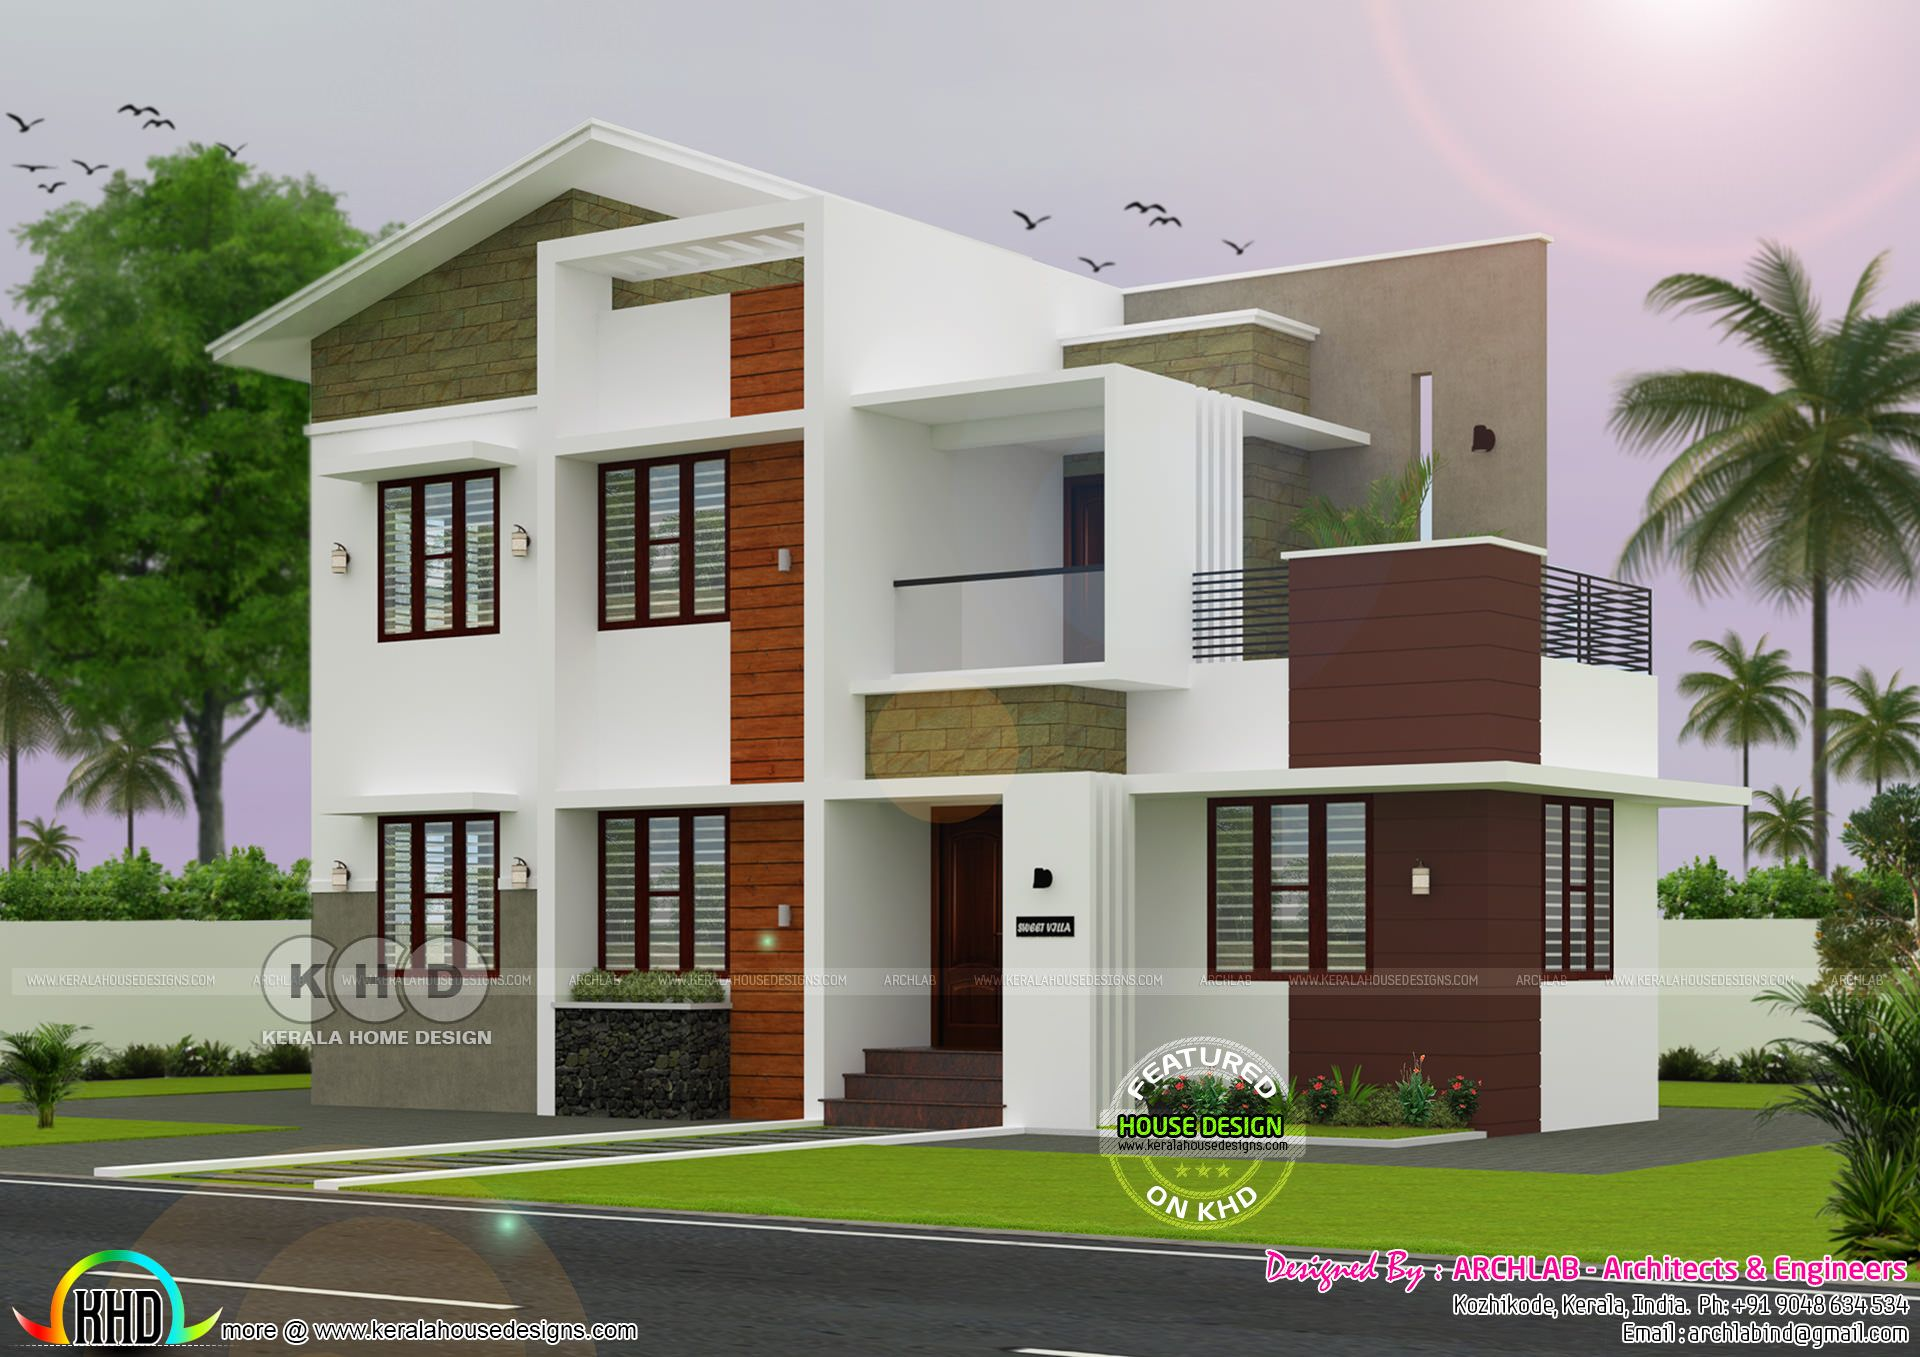 25 30 Lakhs Cost Estimated House Architecture Bungalow Design Duplex House Design Kerala House Design